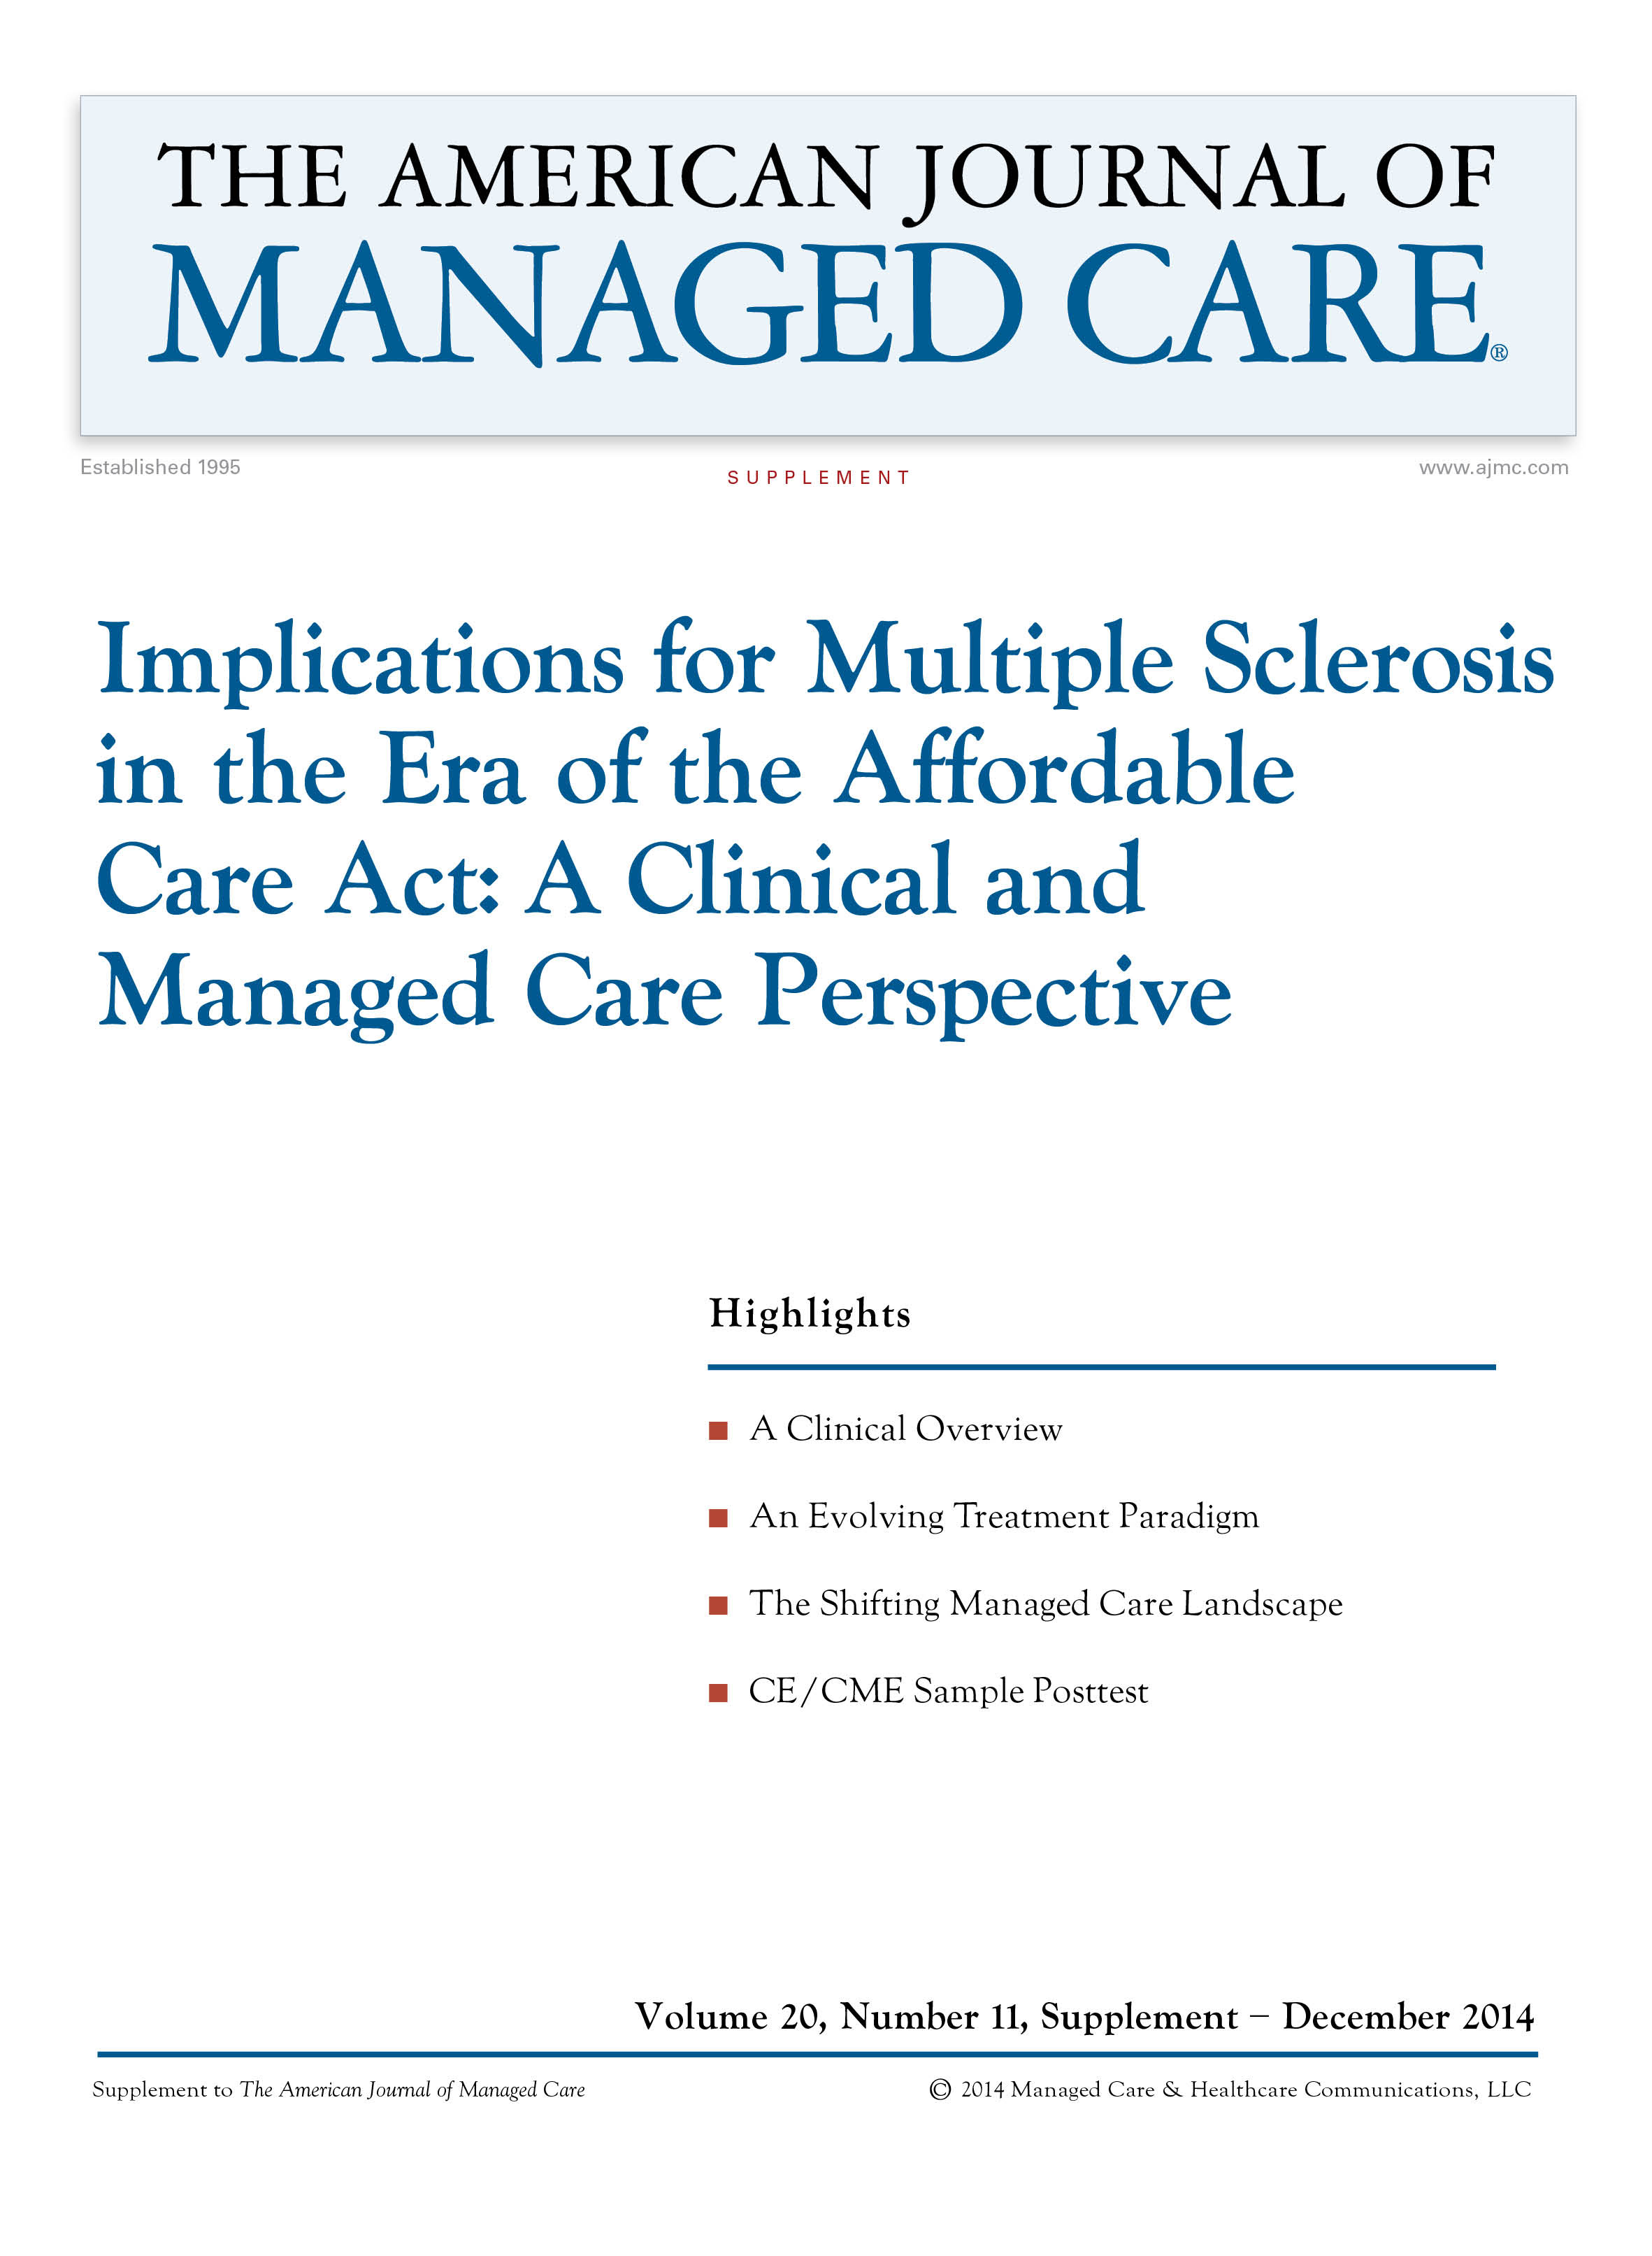 Implications for Multiple Sclerosis in the Era of the Affordable Care Act: A Clinical and Managed Care Perspective [CME/CPE]